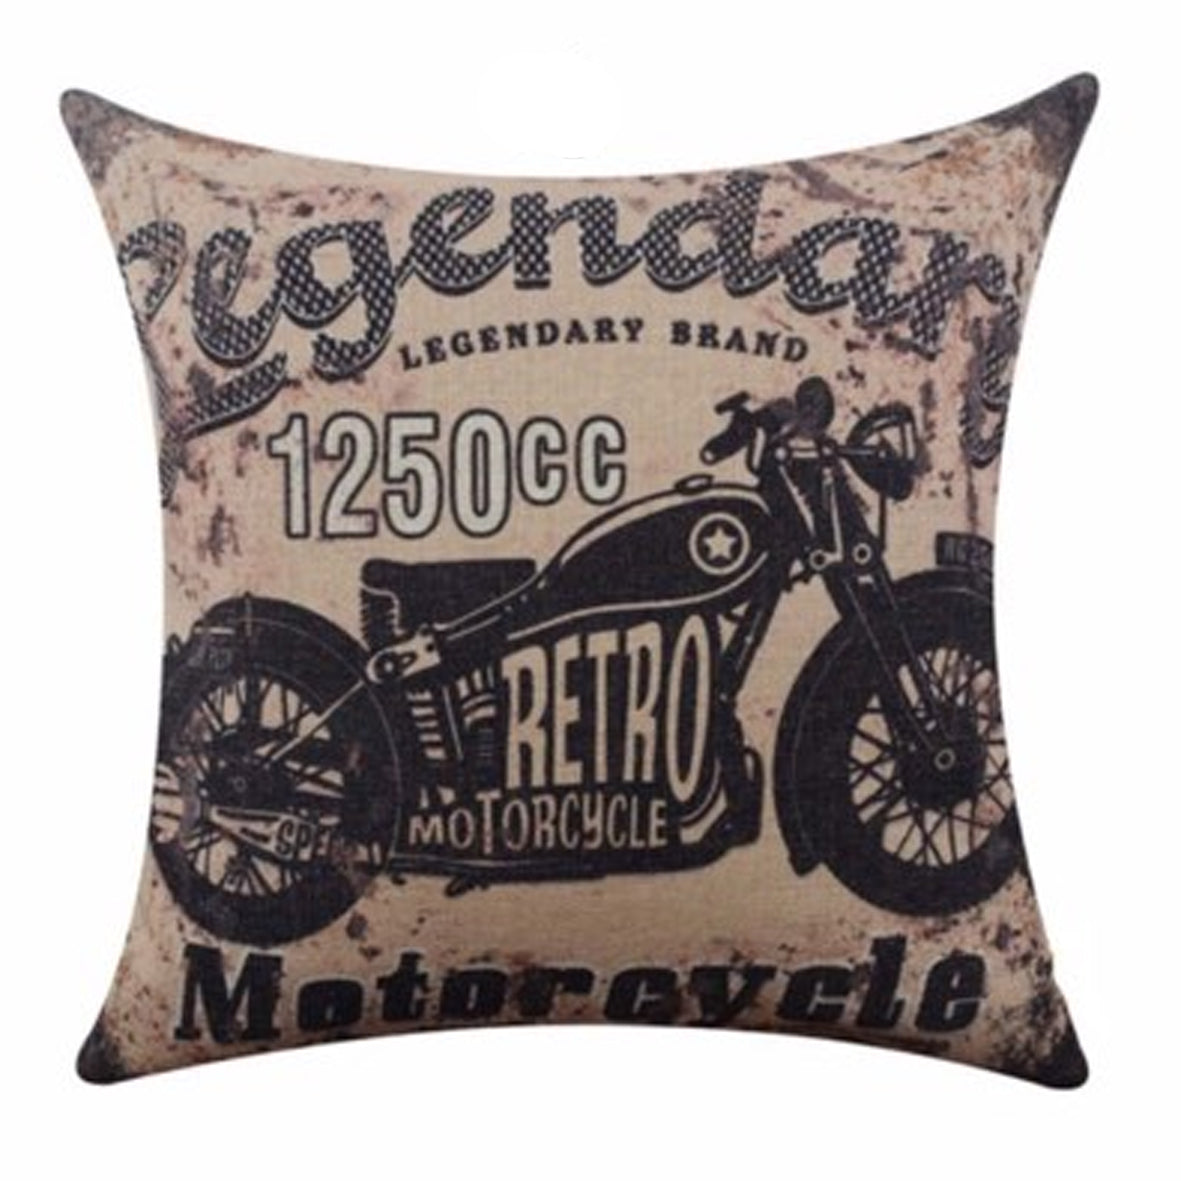 Retro Motorcycle Cushion